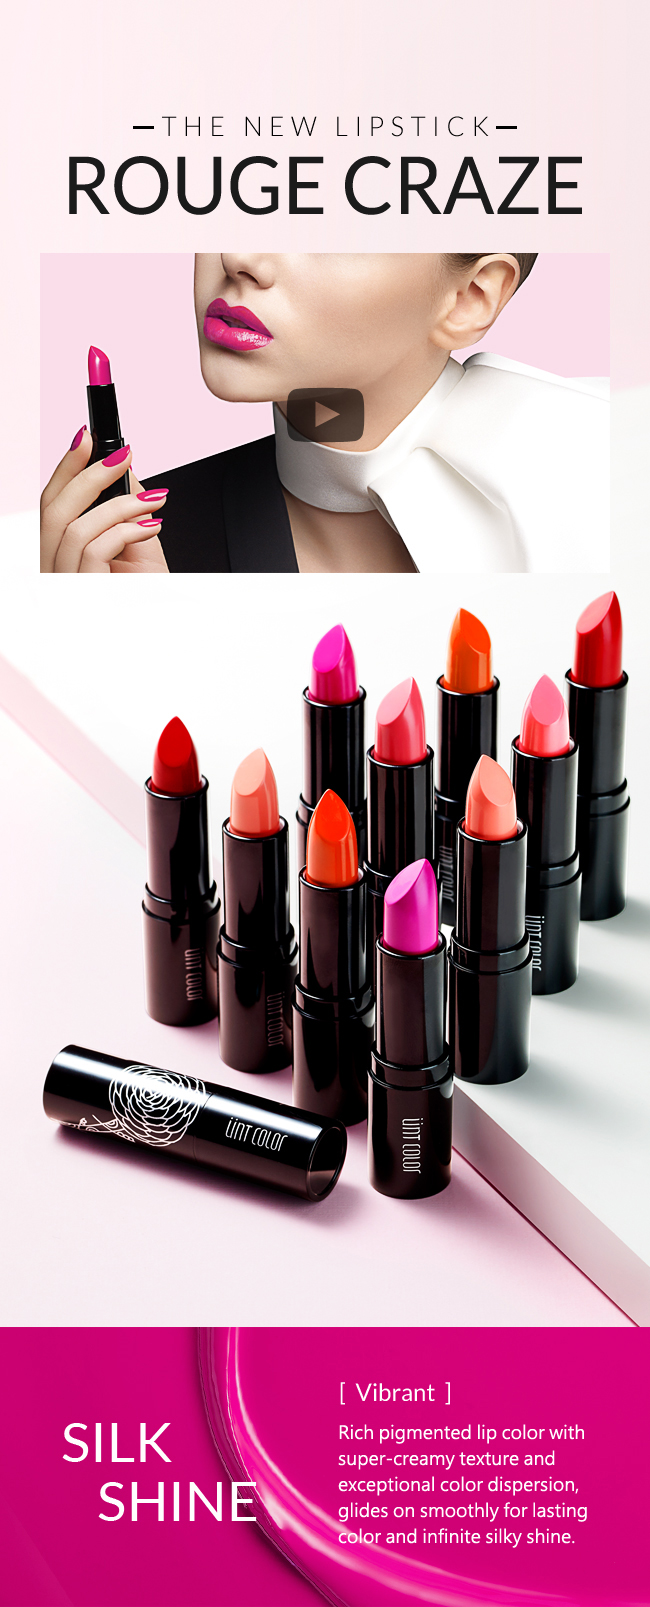 New lipstick. Rouge Craze. Silk Shine. Rich pigmented lip color with super-creamy texture and exceptional color dispersion, glides on smoothly for lasting color and infinite silky shine.